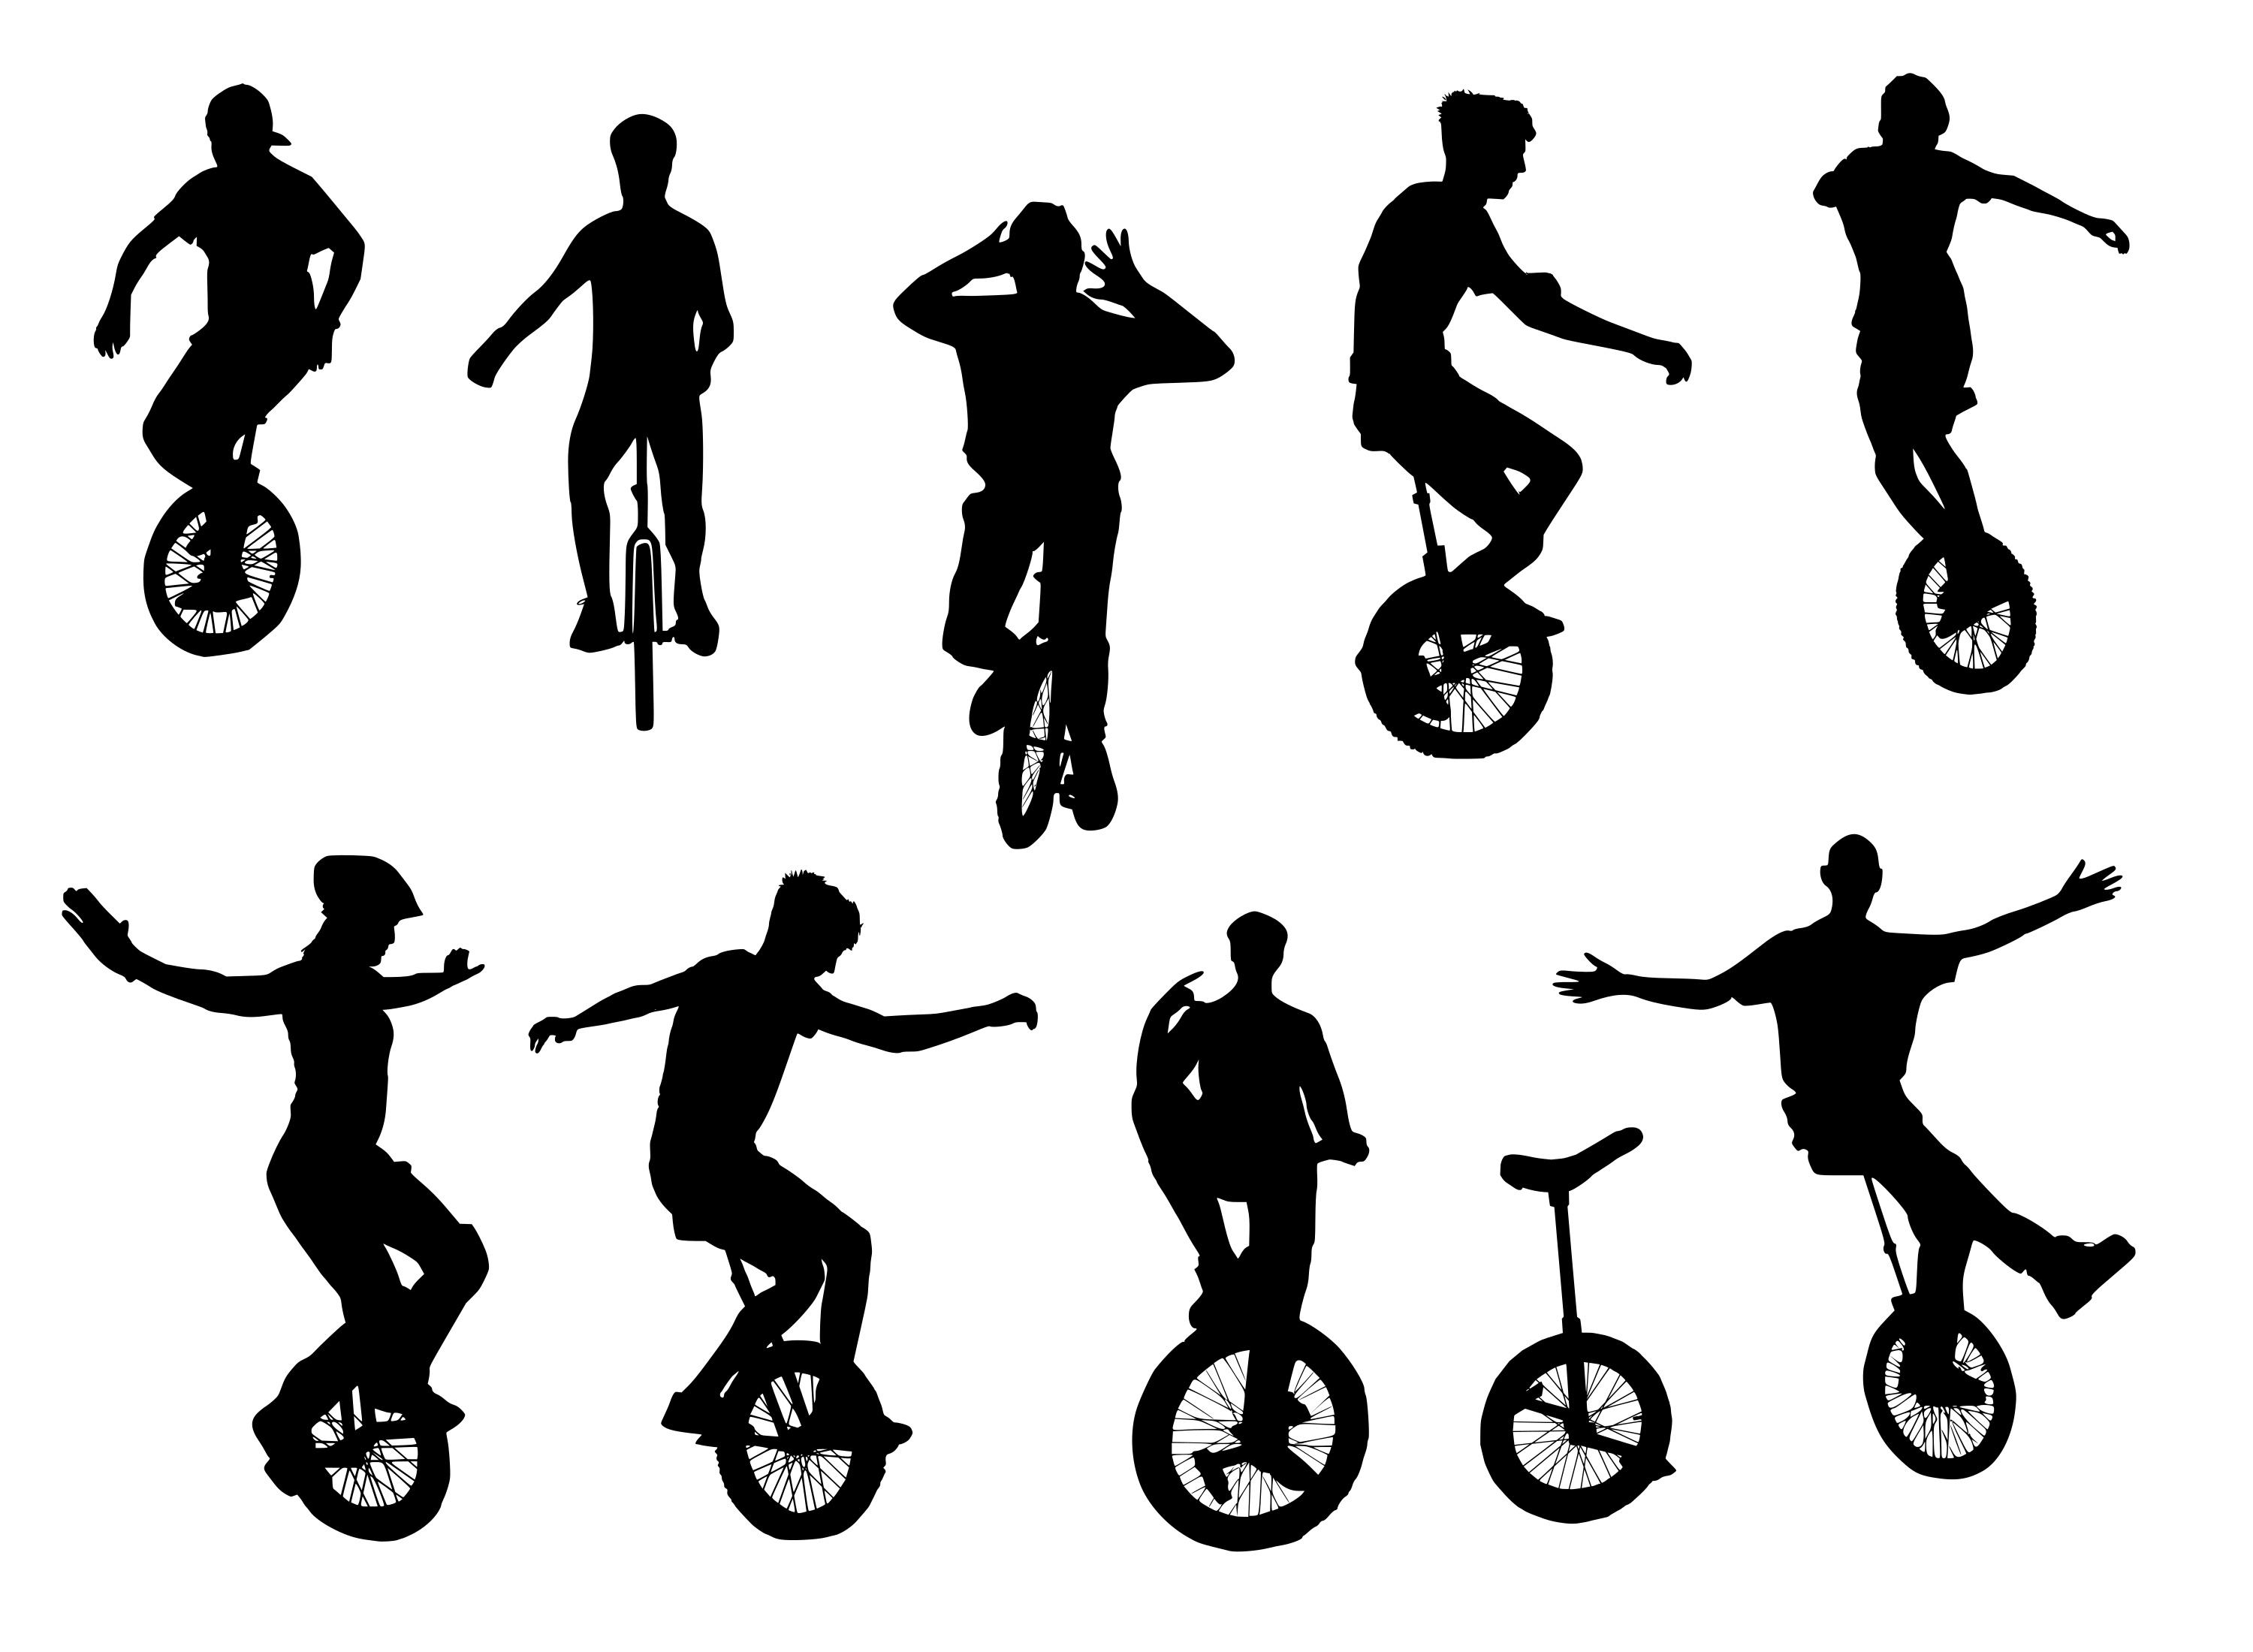 10-unicycle-silhouette-cover.png